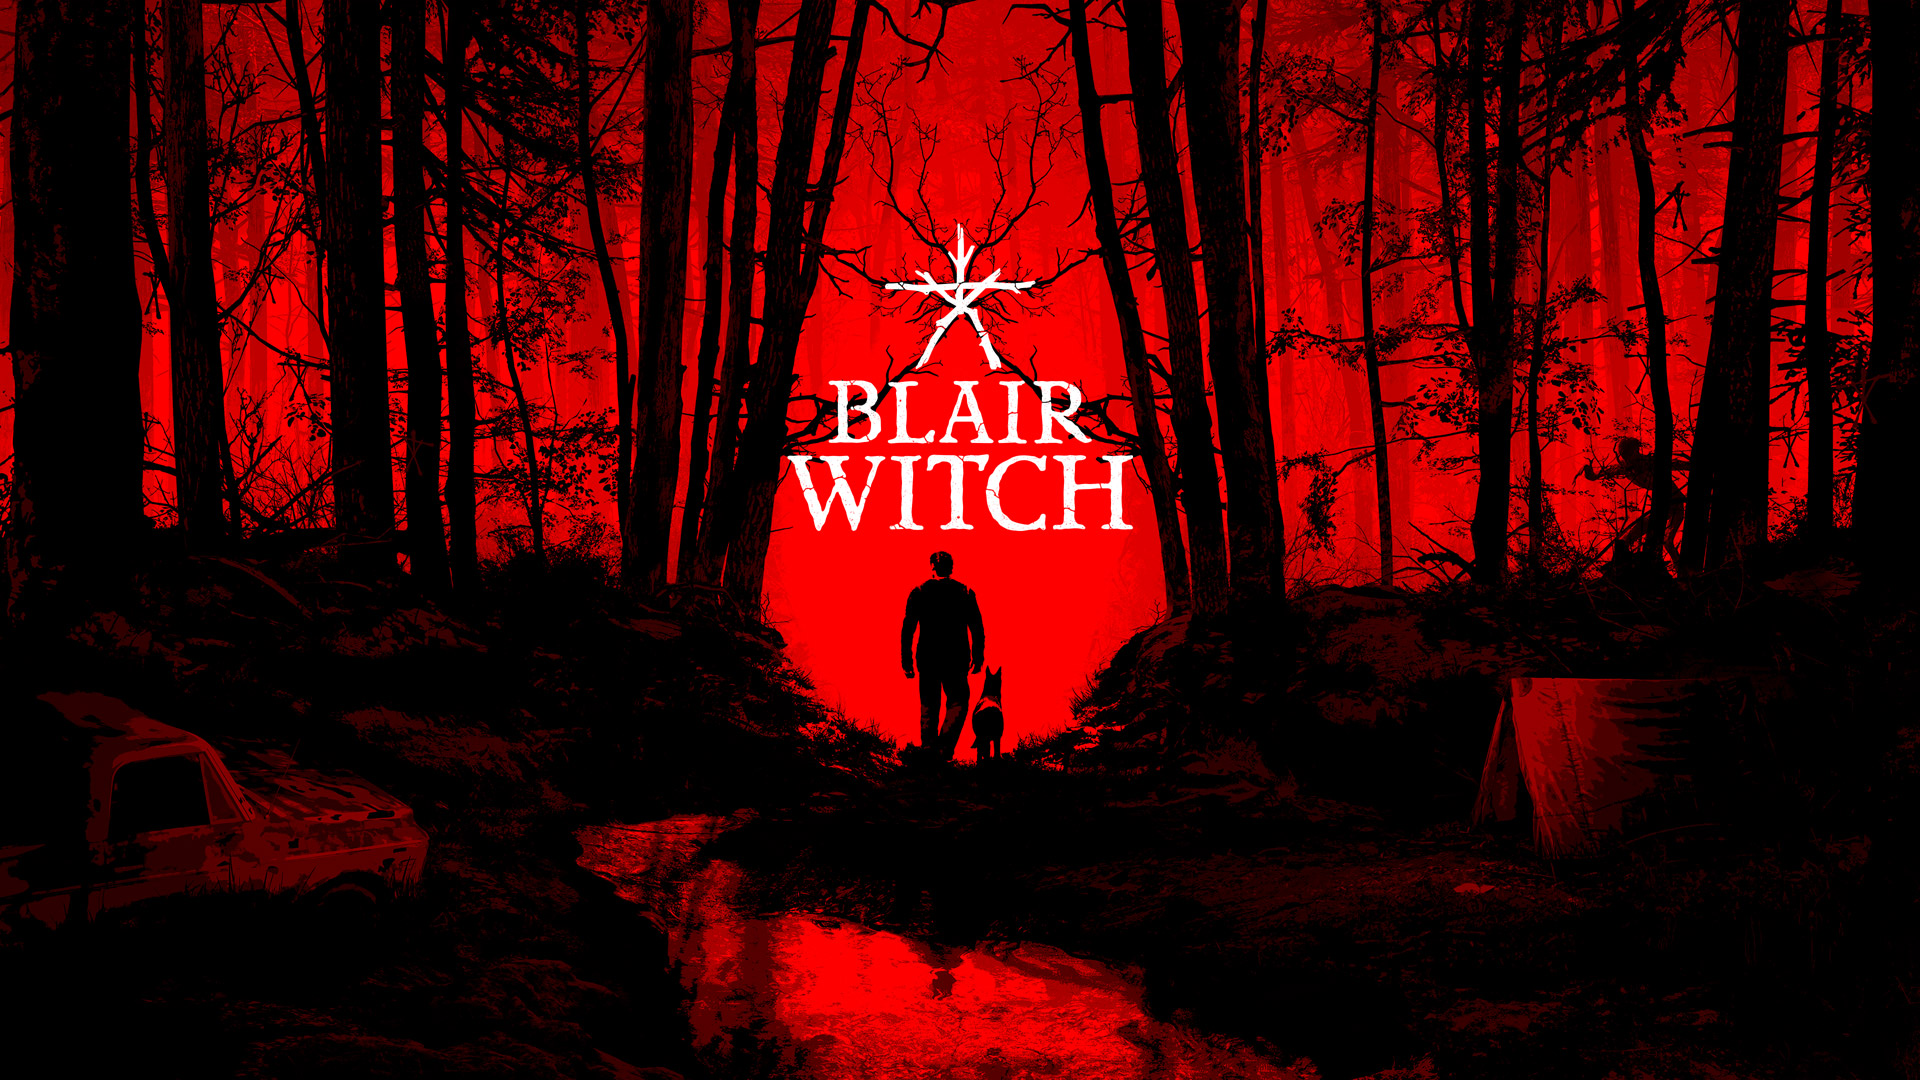 Free Blair Witch Wallpaper in 1920x1080